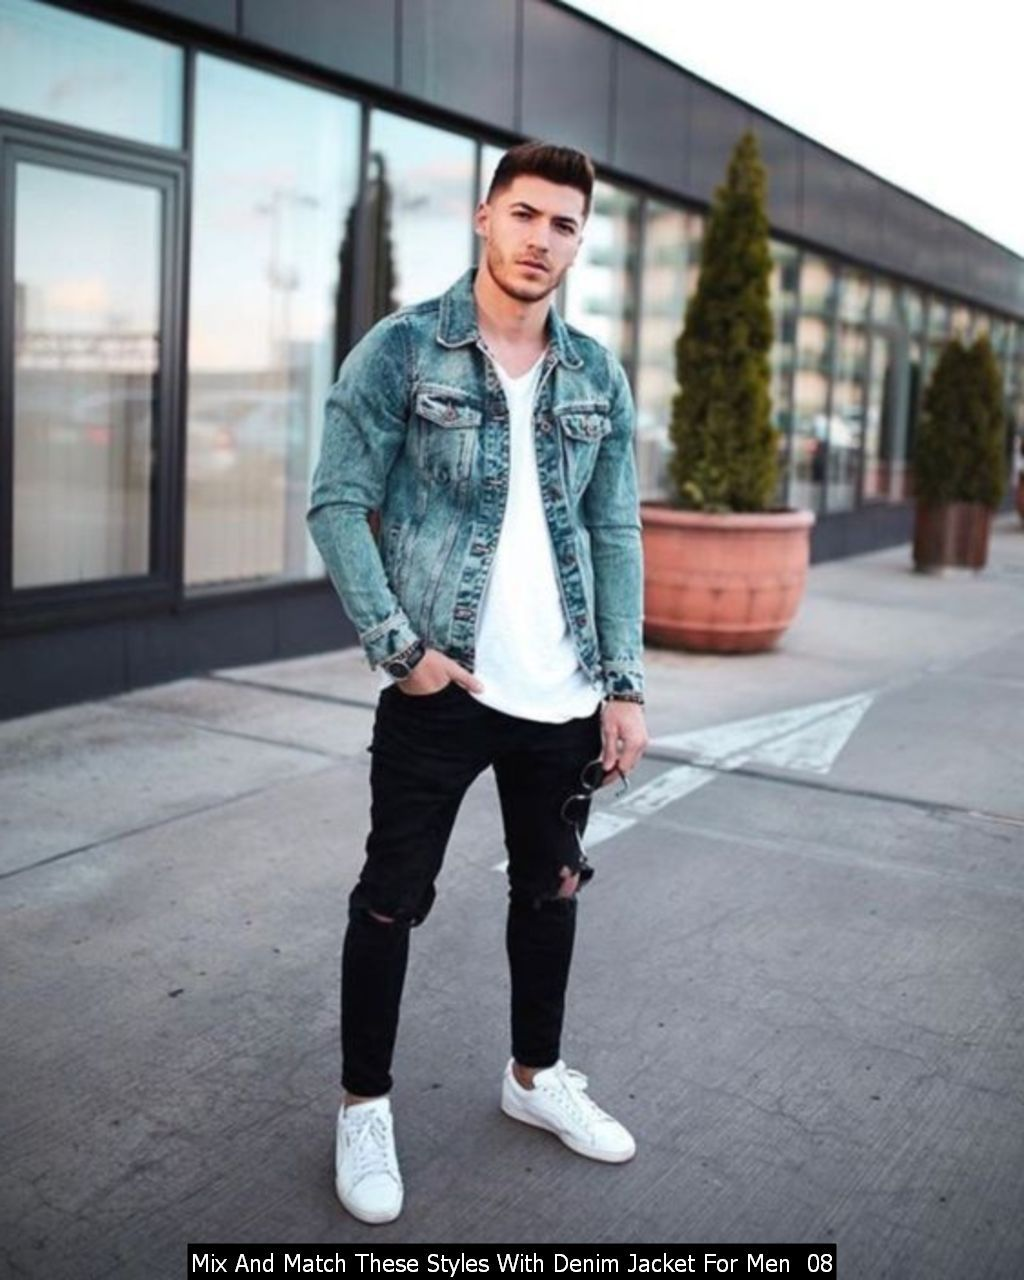 Mix And Match These Styles With Denim Jacket For Men Mens Casual Outfits Winter Fashion Casual Mens Outfits [ 1280 x 1024 Pixel ]